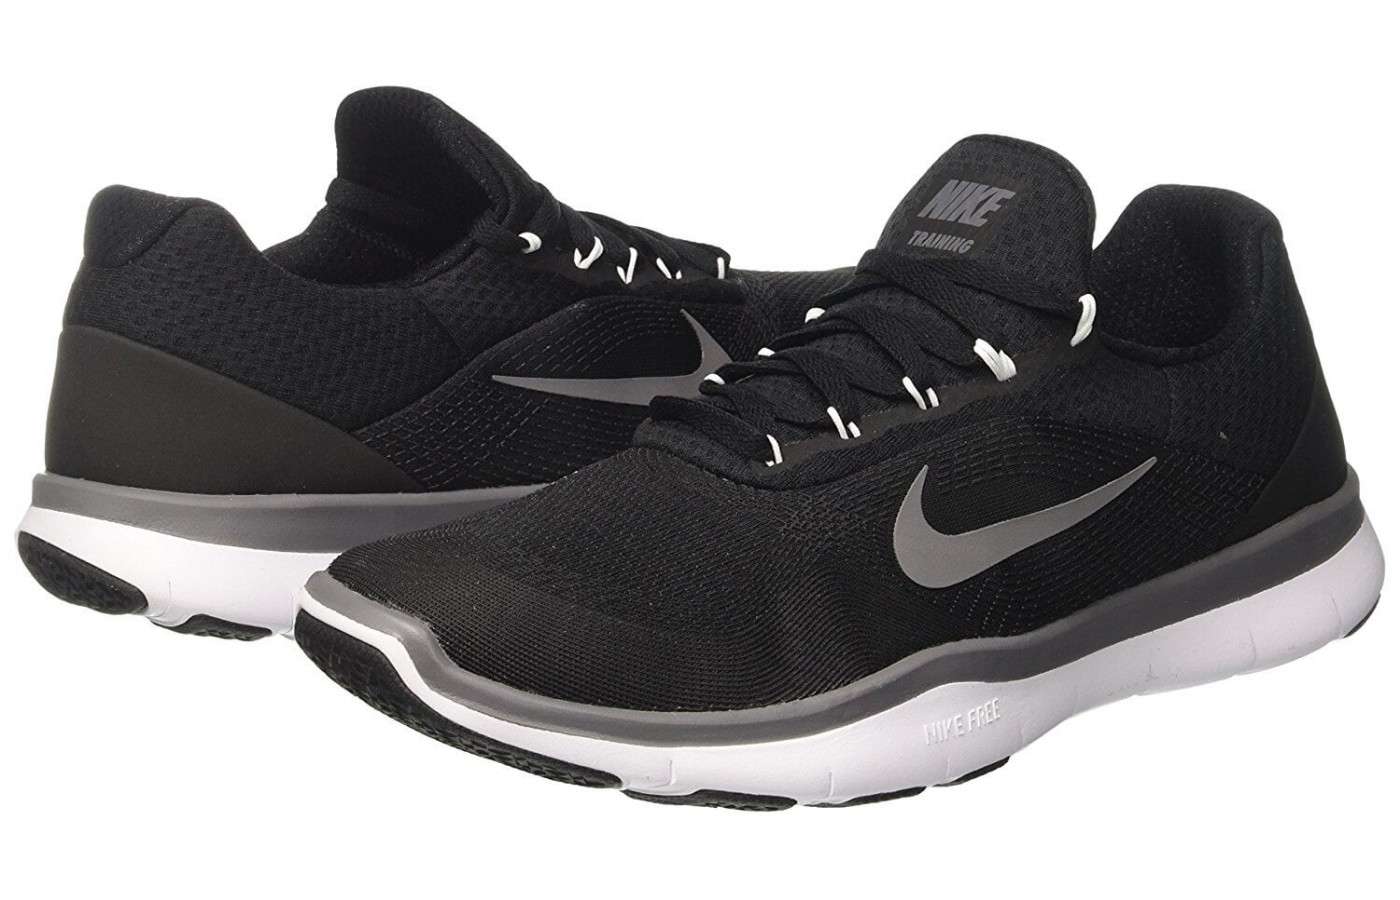 The Nike Free Trainer V7 has a 5mm drop